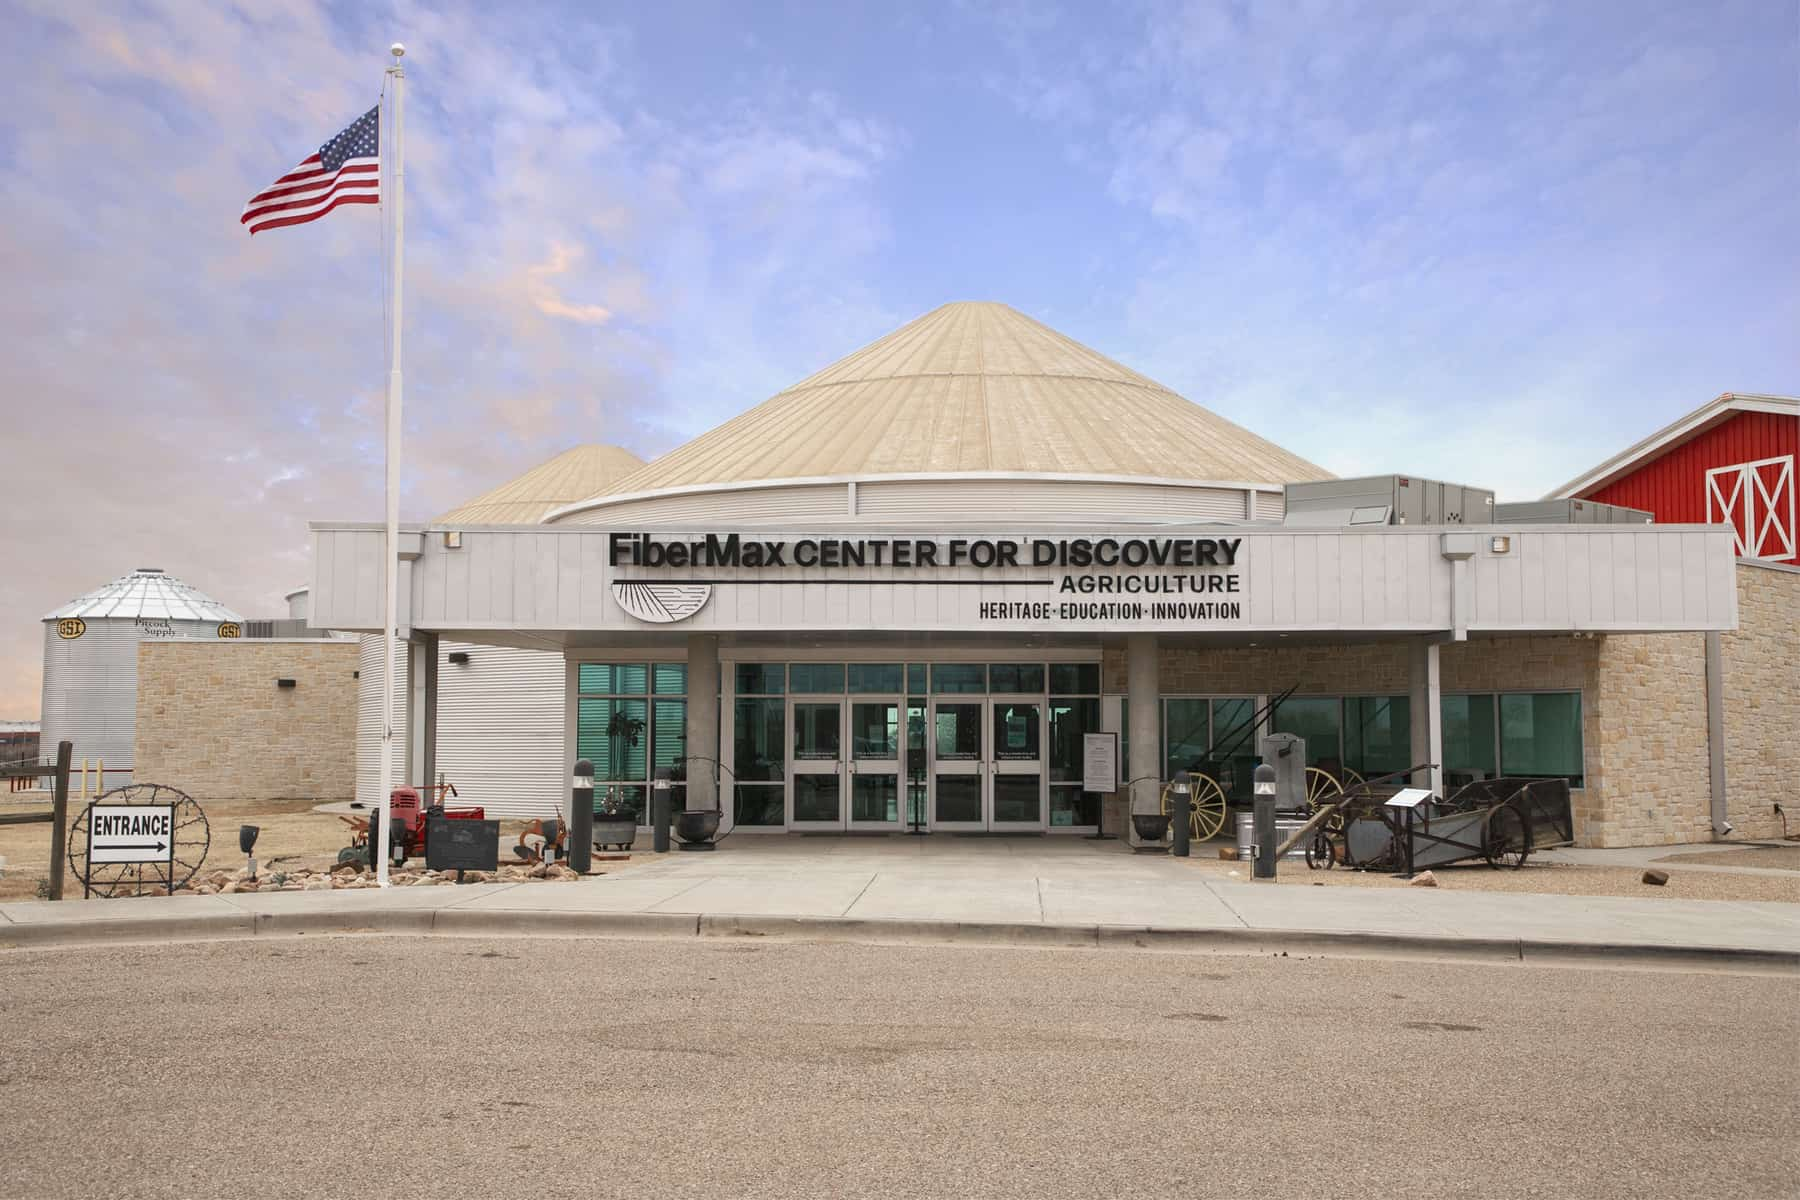 FiberMax Center for Discovery